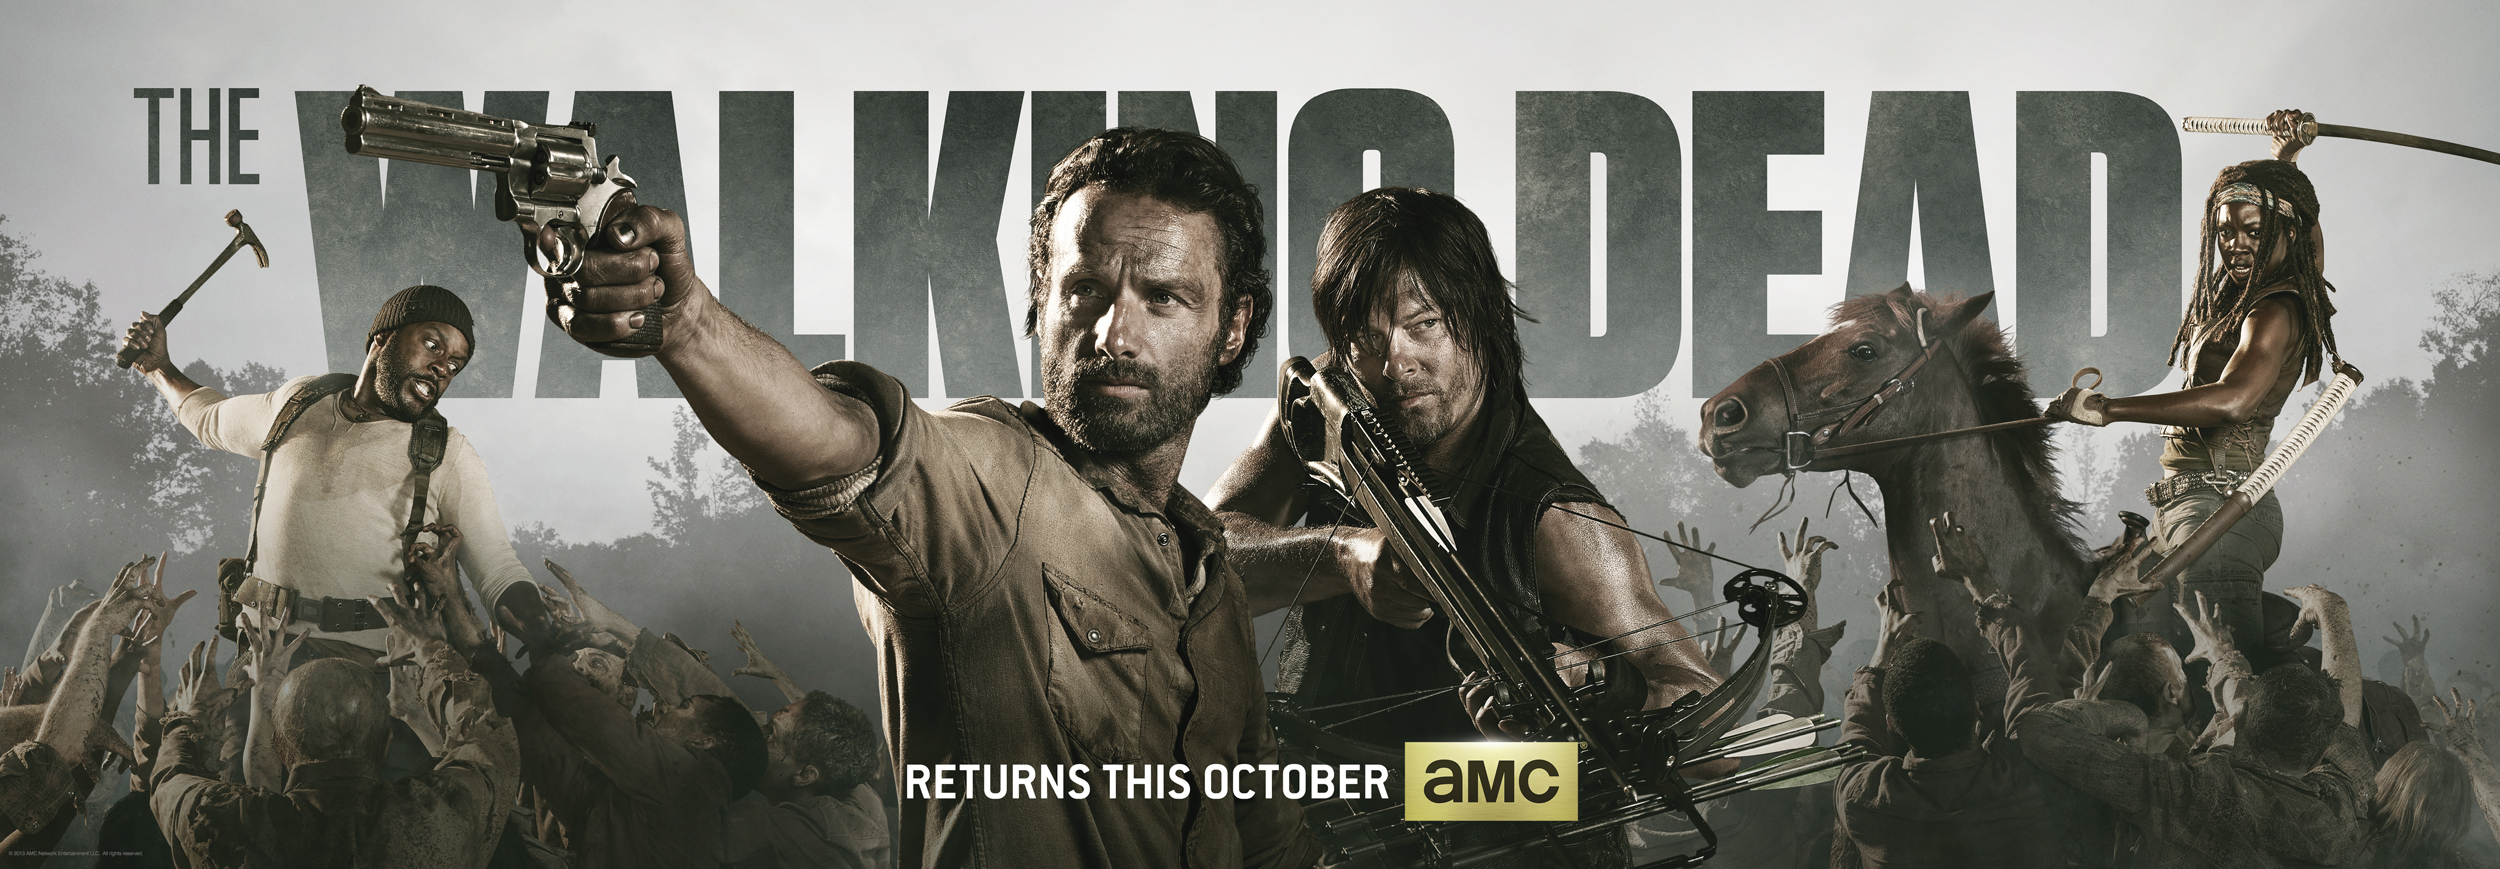 the walking dead season 4 wiki Archives - Geek Prime